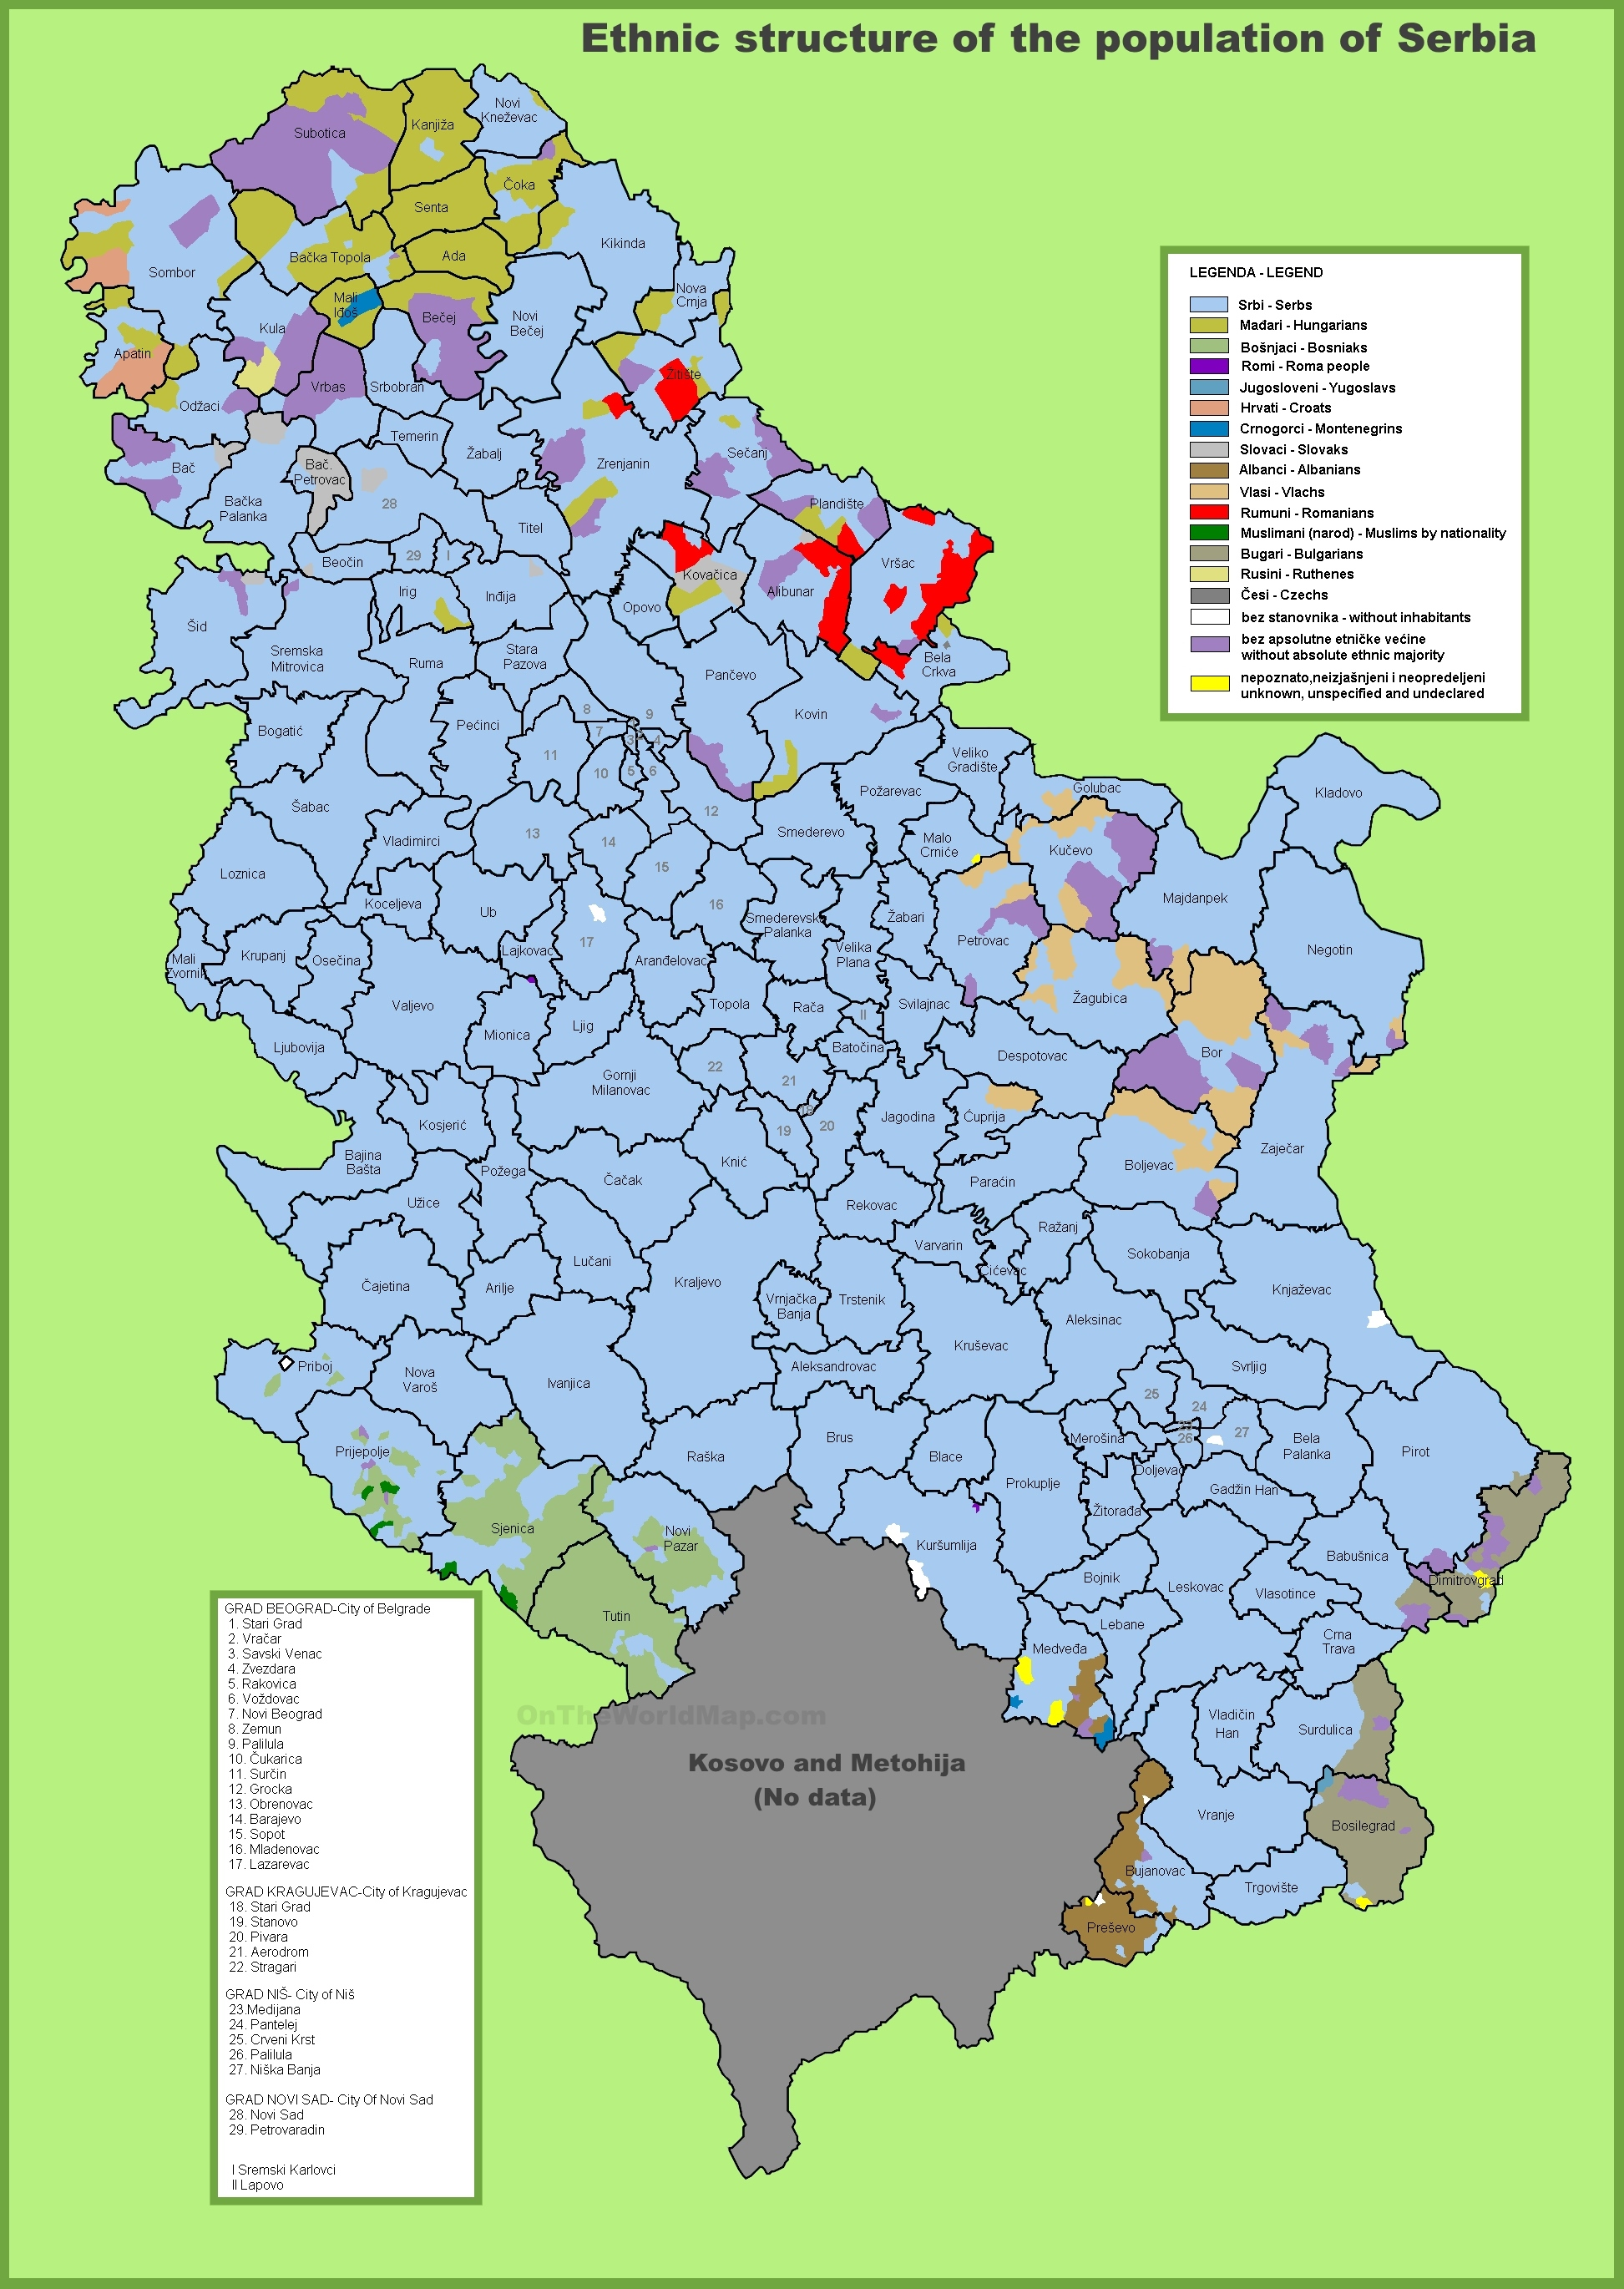 Map of ethnic groups in Serbia